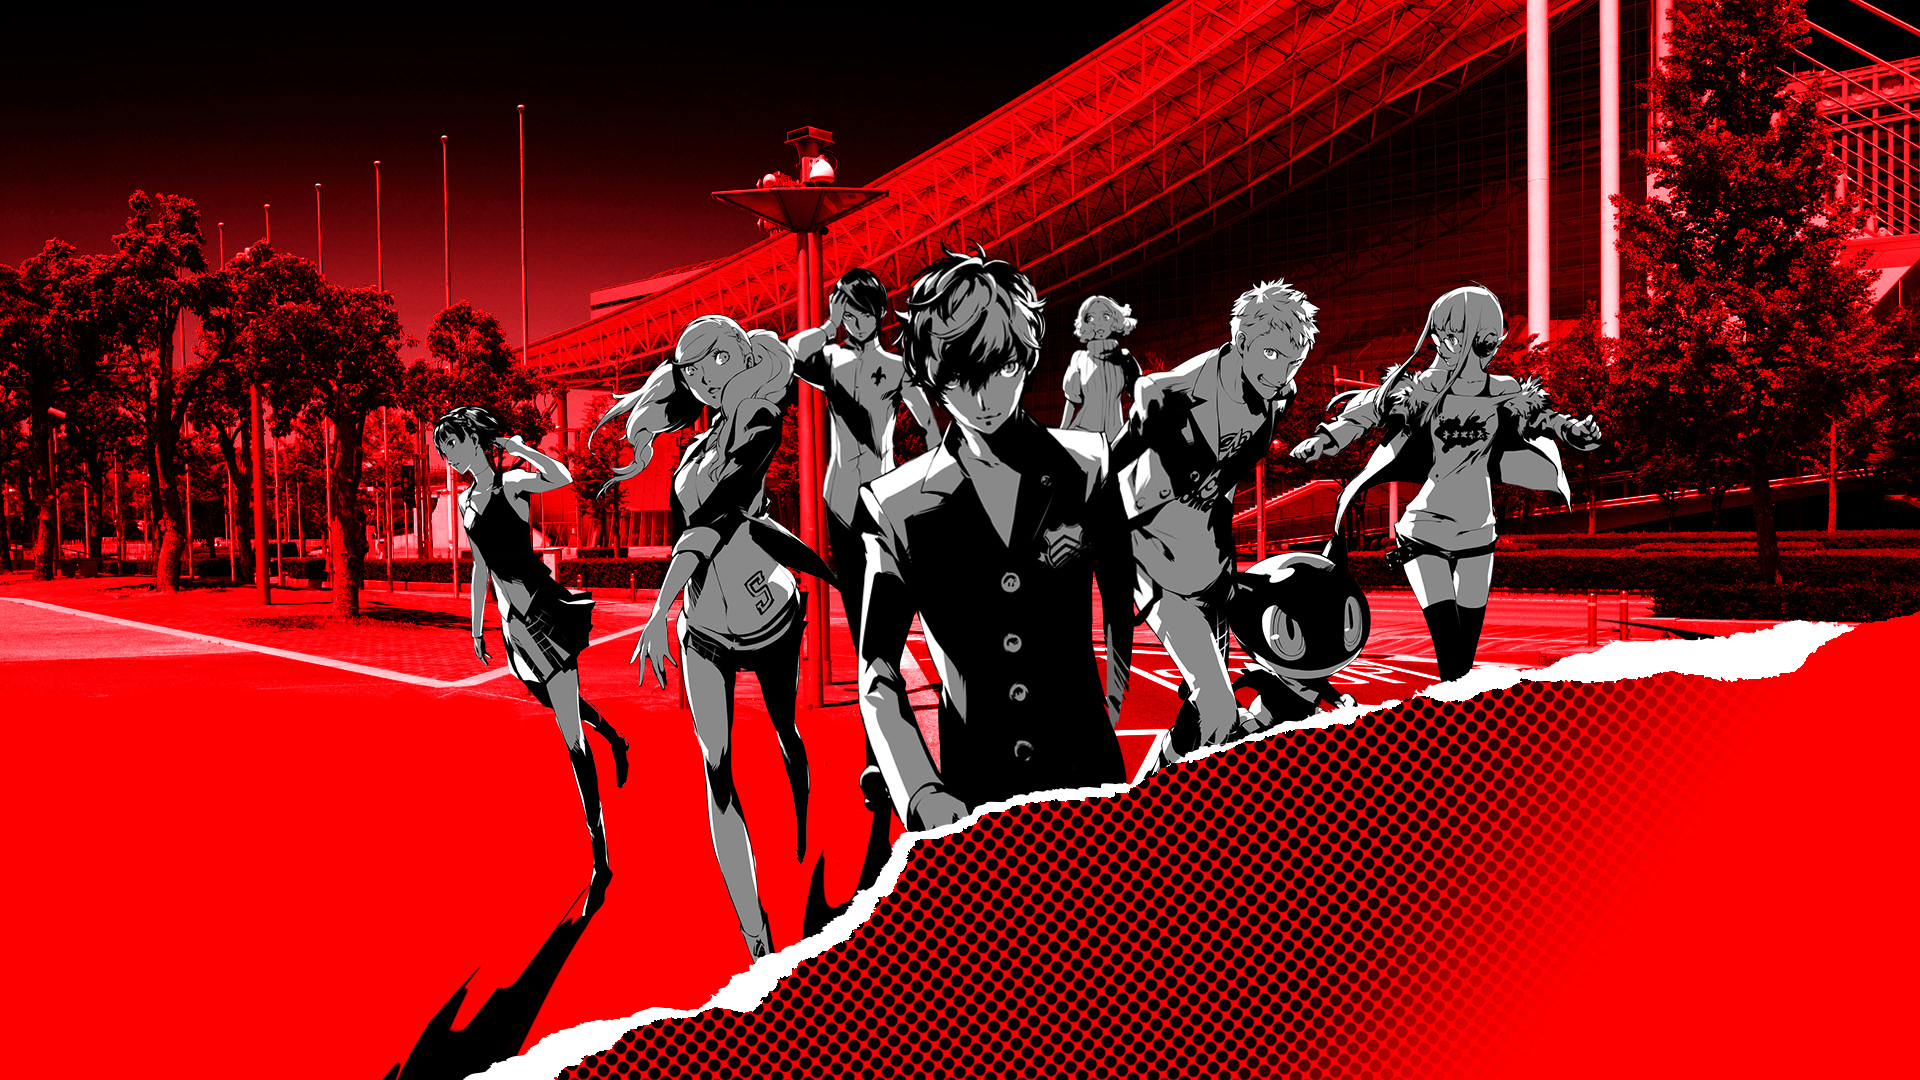 Anywhere i could find a 1080p wallpapers of this? : Persona5